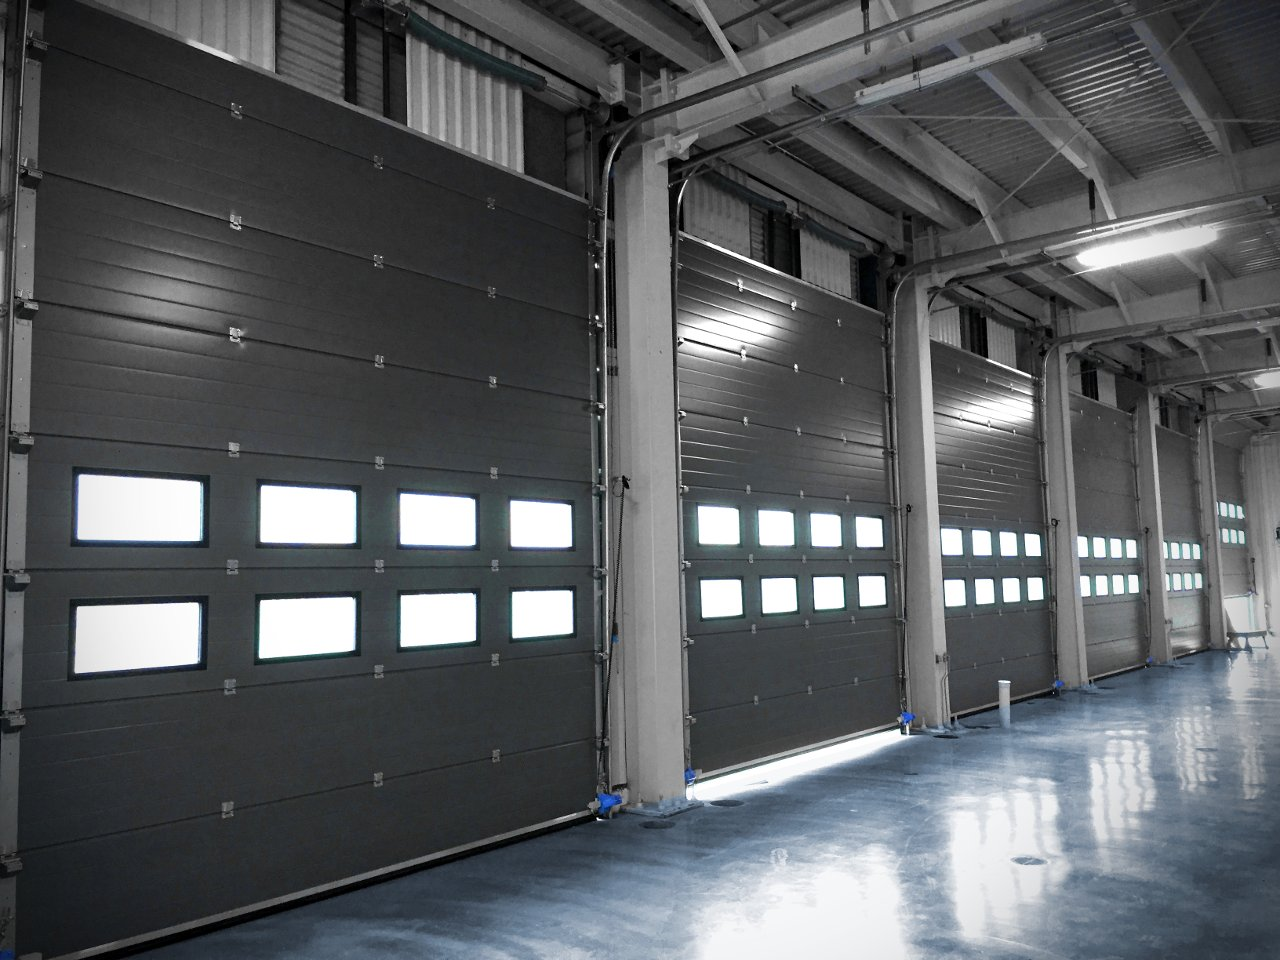 sectional doors from the inside of a building